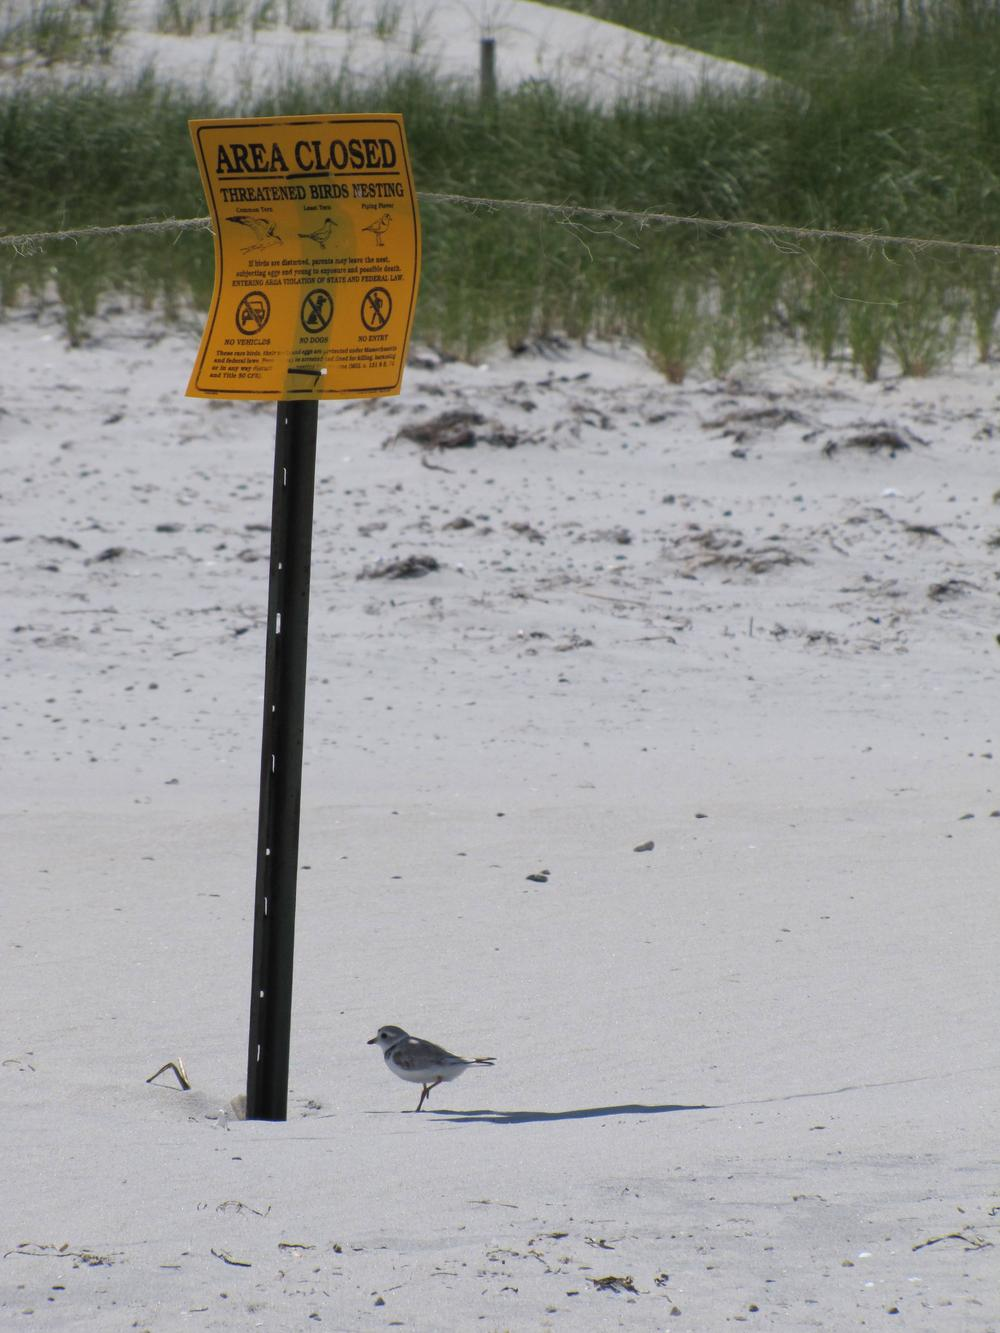 A piping plover is seen next to a sign forbidding beachgoers from driving off-road vehicles near the plovers' nesting grounds. (Courtesy Scott Hecker)